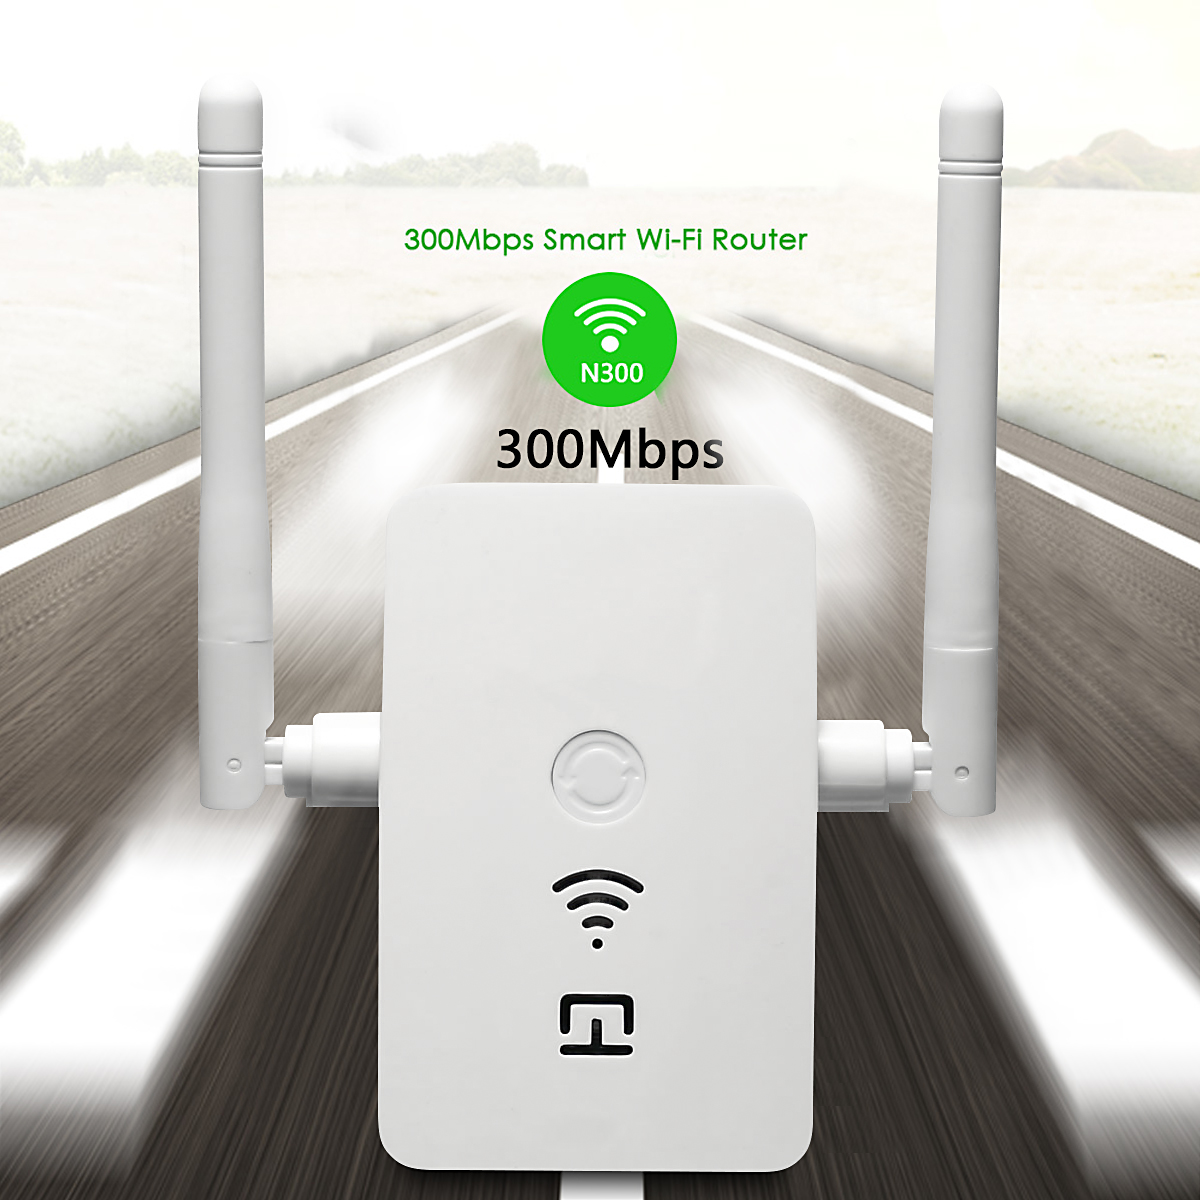 300Mbps Wireless-N WiFi 802.11n/b/g Range Extender WLAN Repeater Signal Booster Network Router Dual Antenna to Smart Home WiFi Coverage